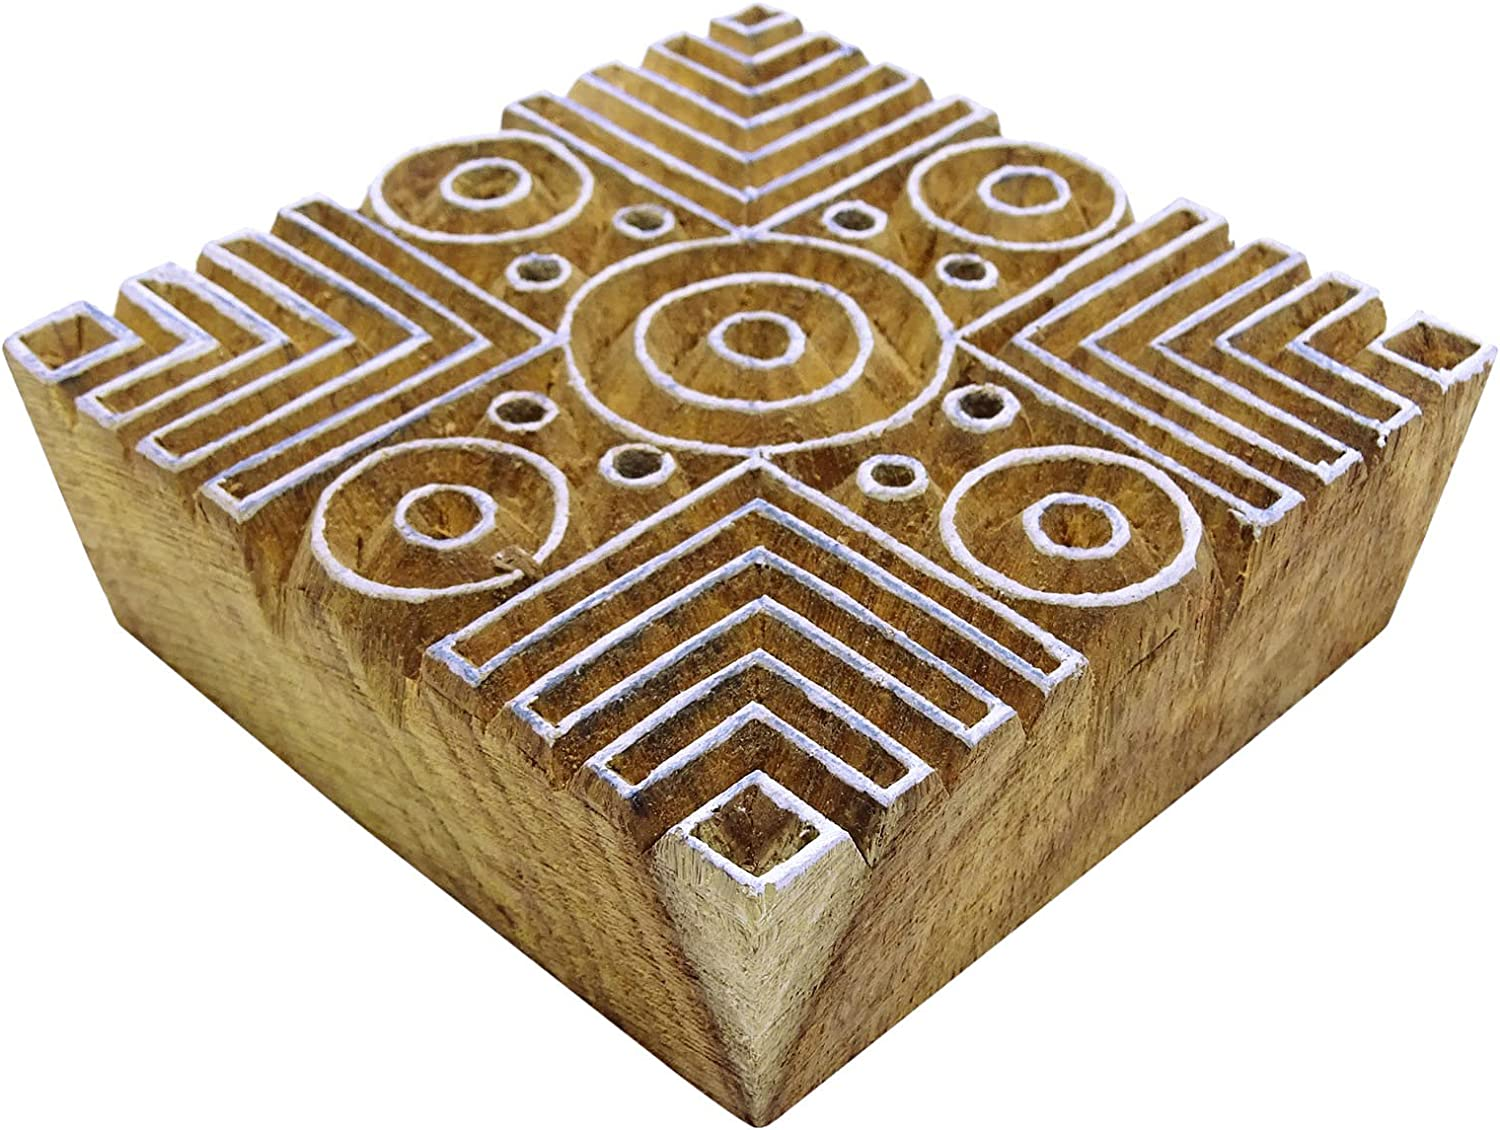 Indian Hand Carved Textile Printing Blocks Wooden Fabric Stamps 6876